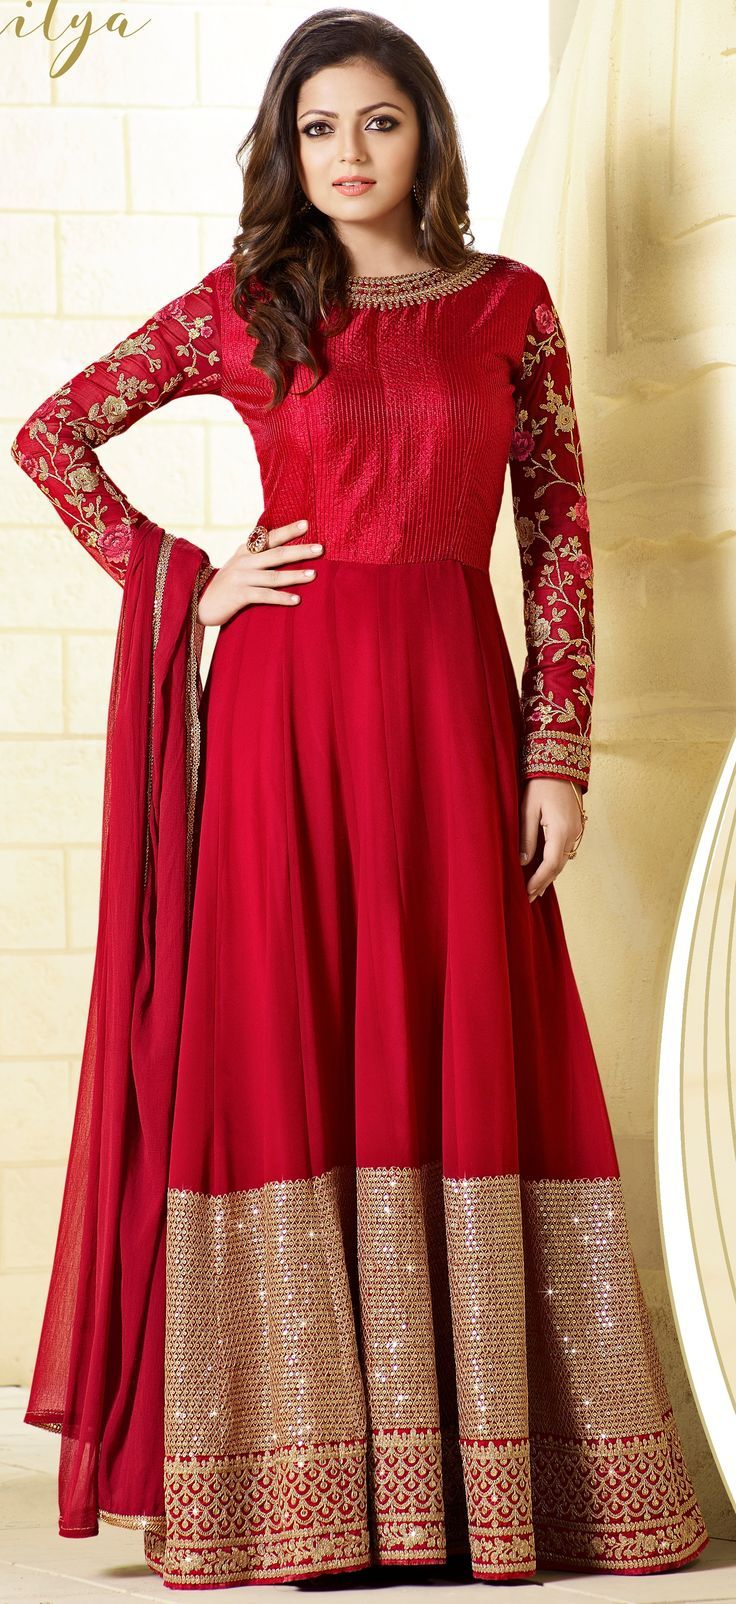 1f580fd8d8 Cool Ladies Dresses Drashti Dhami georgette deep pink floor length Anarkali  suit with resham zari an.